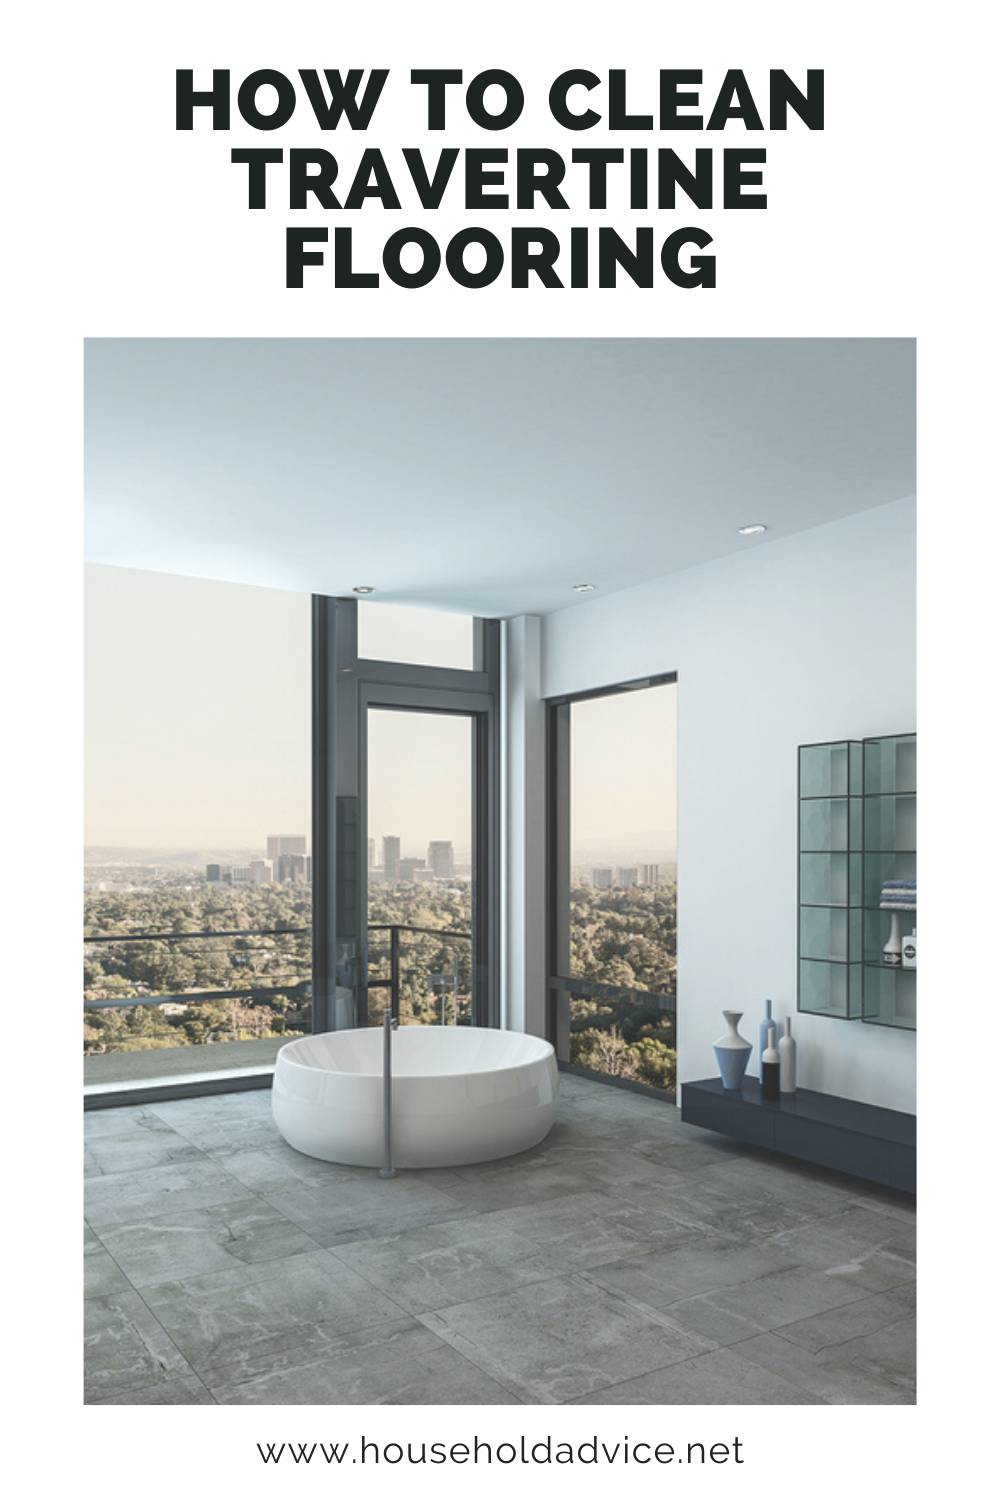 How To Clean Travertine Flooring (Always Consider This) in